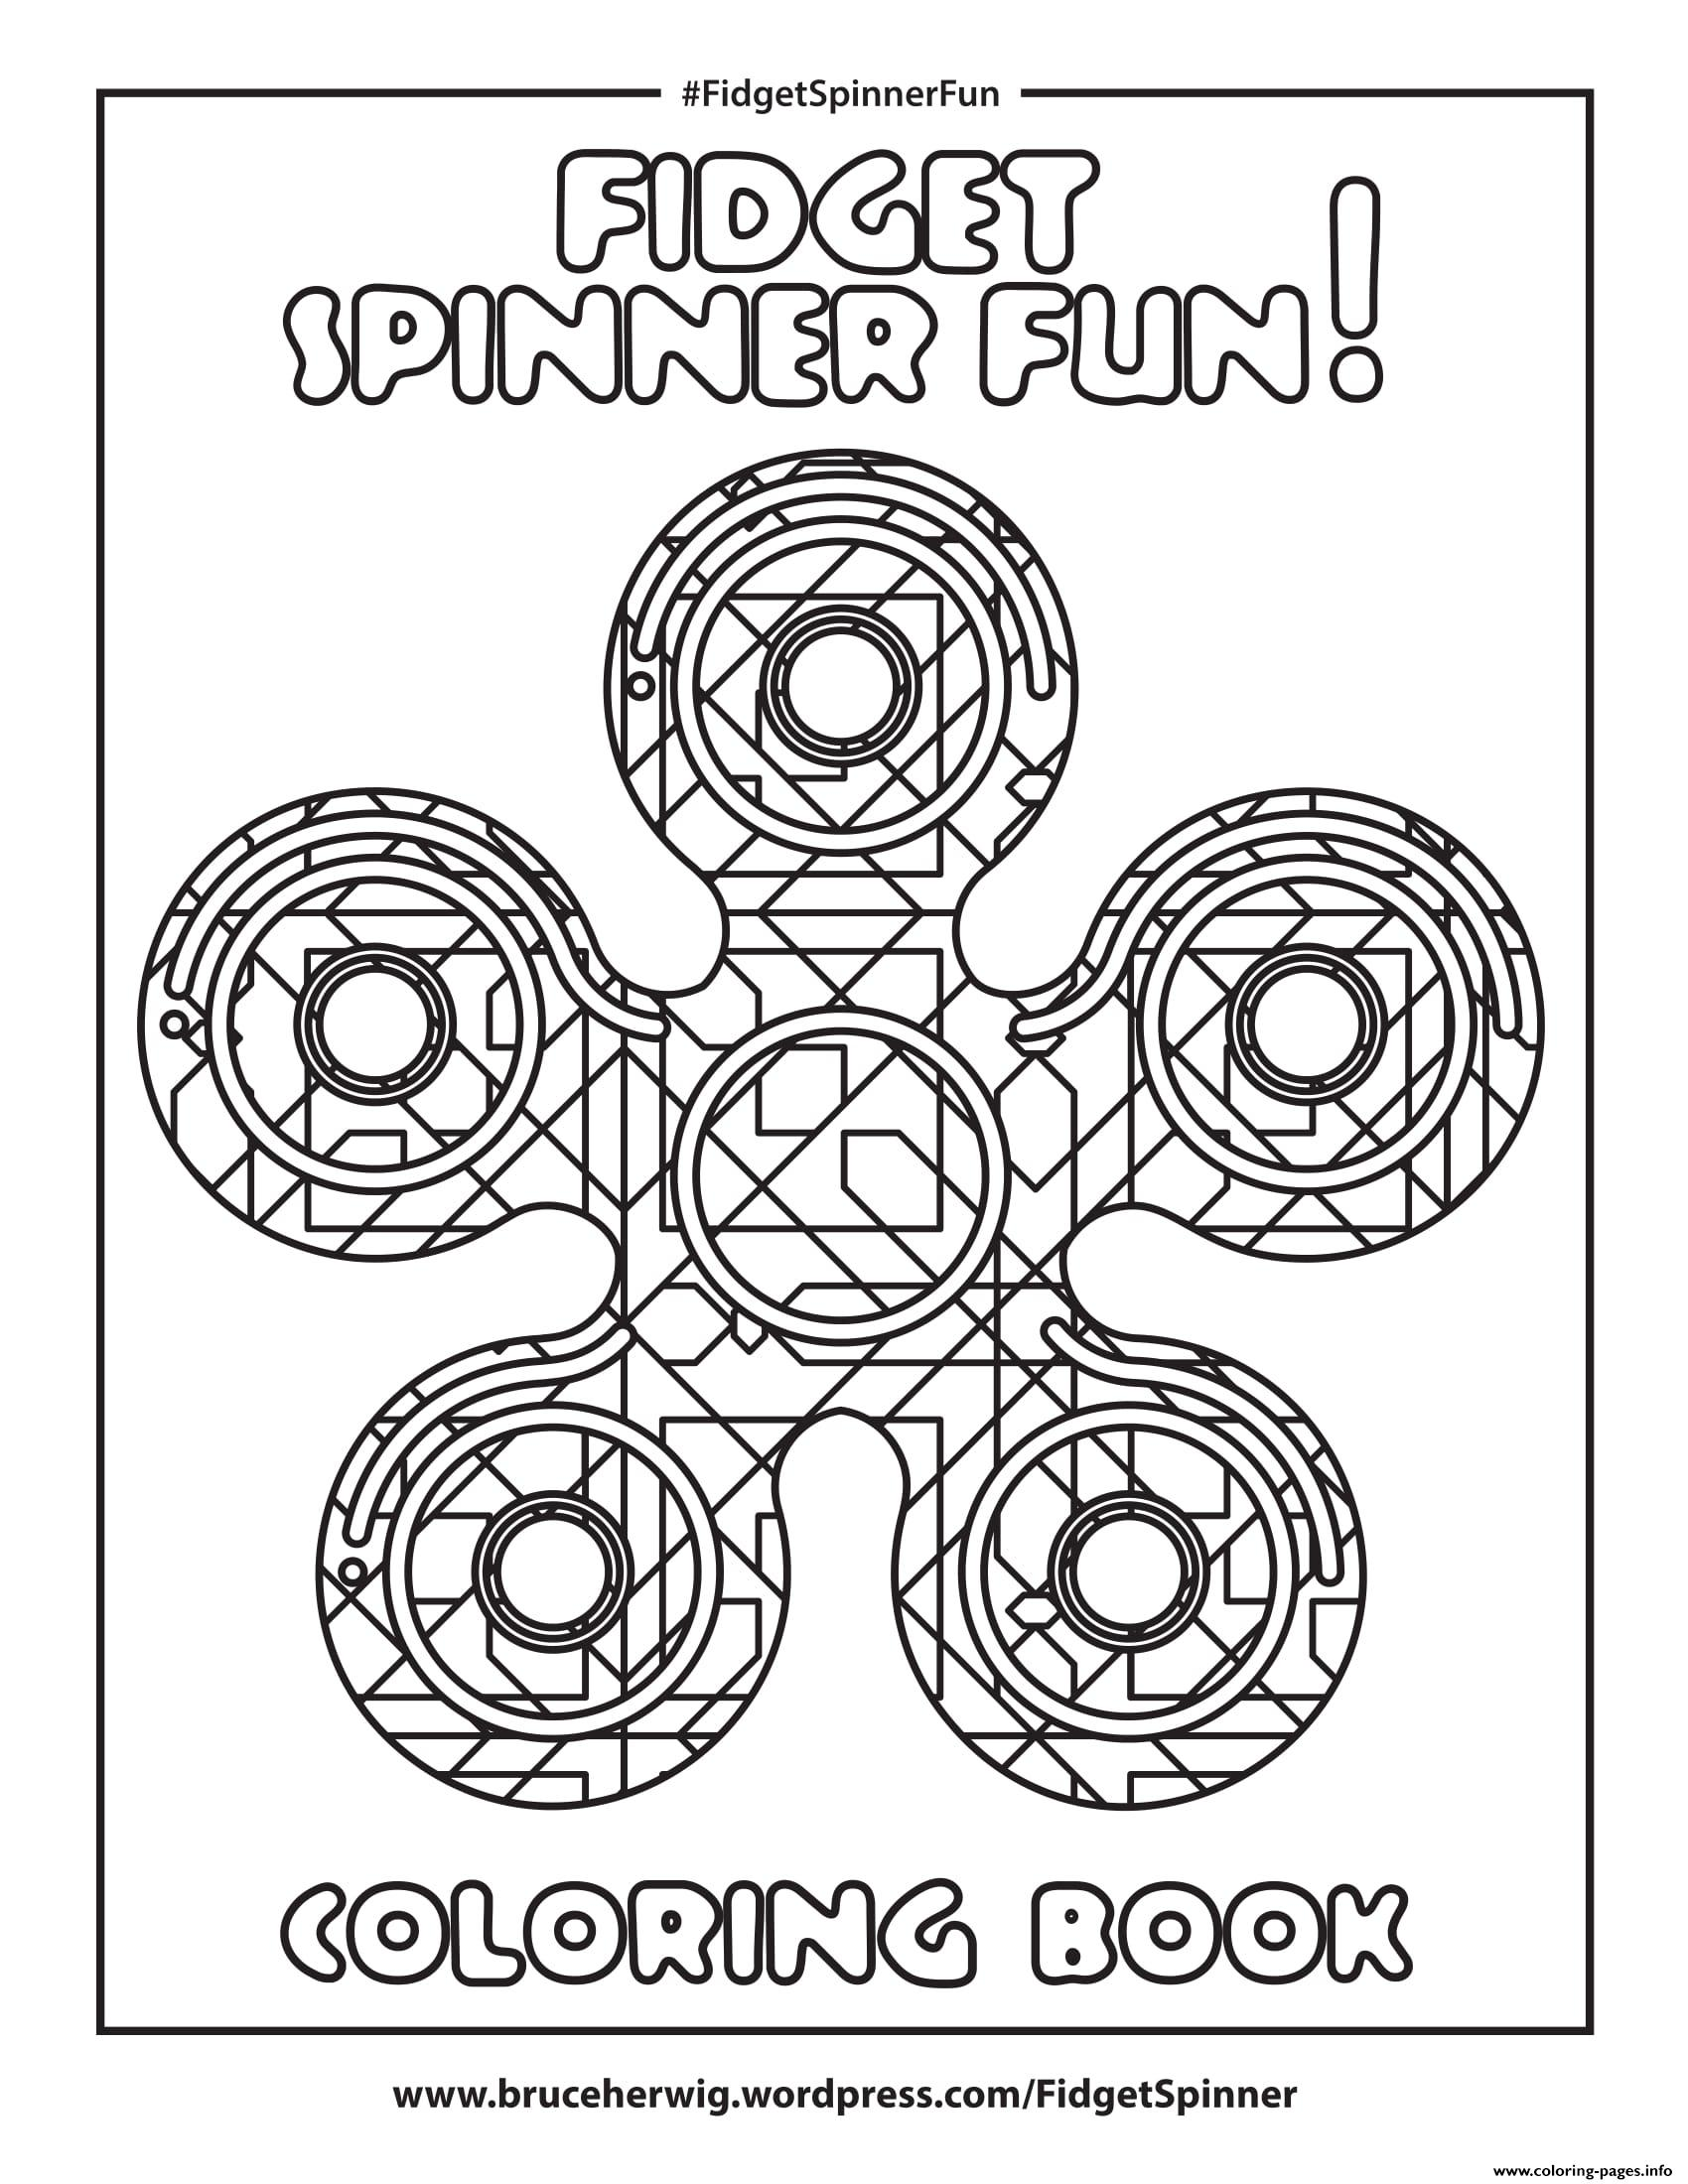 Fidget Spinner Fun Round Mandala Zen coloring pages